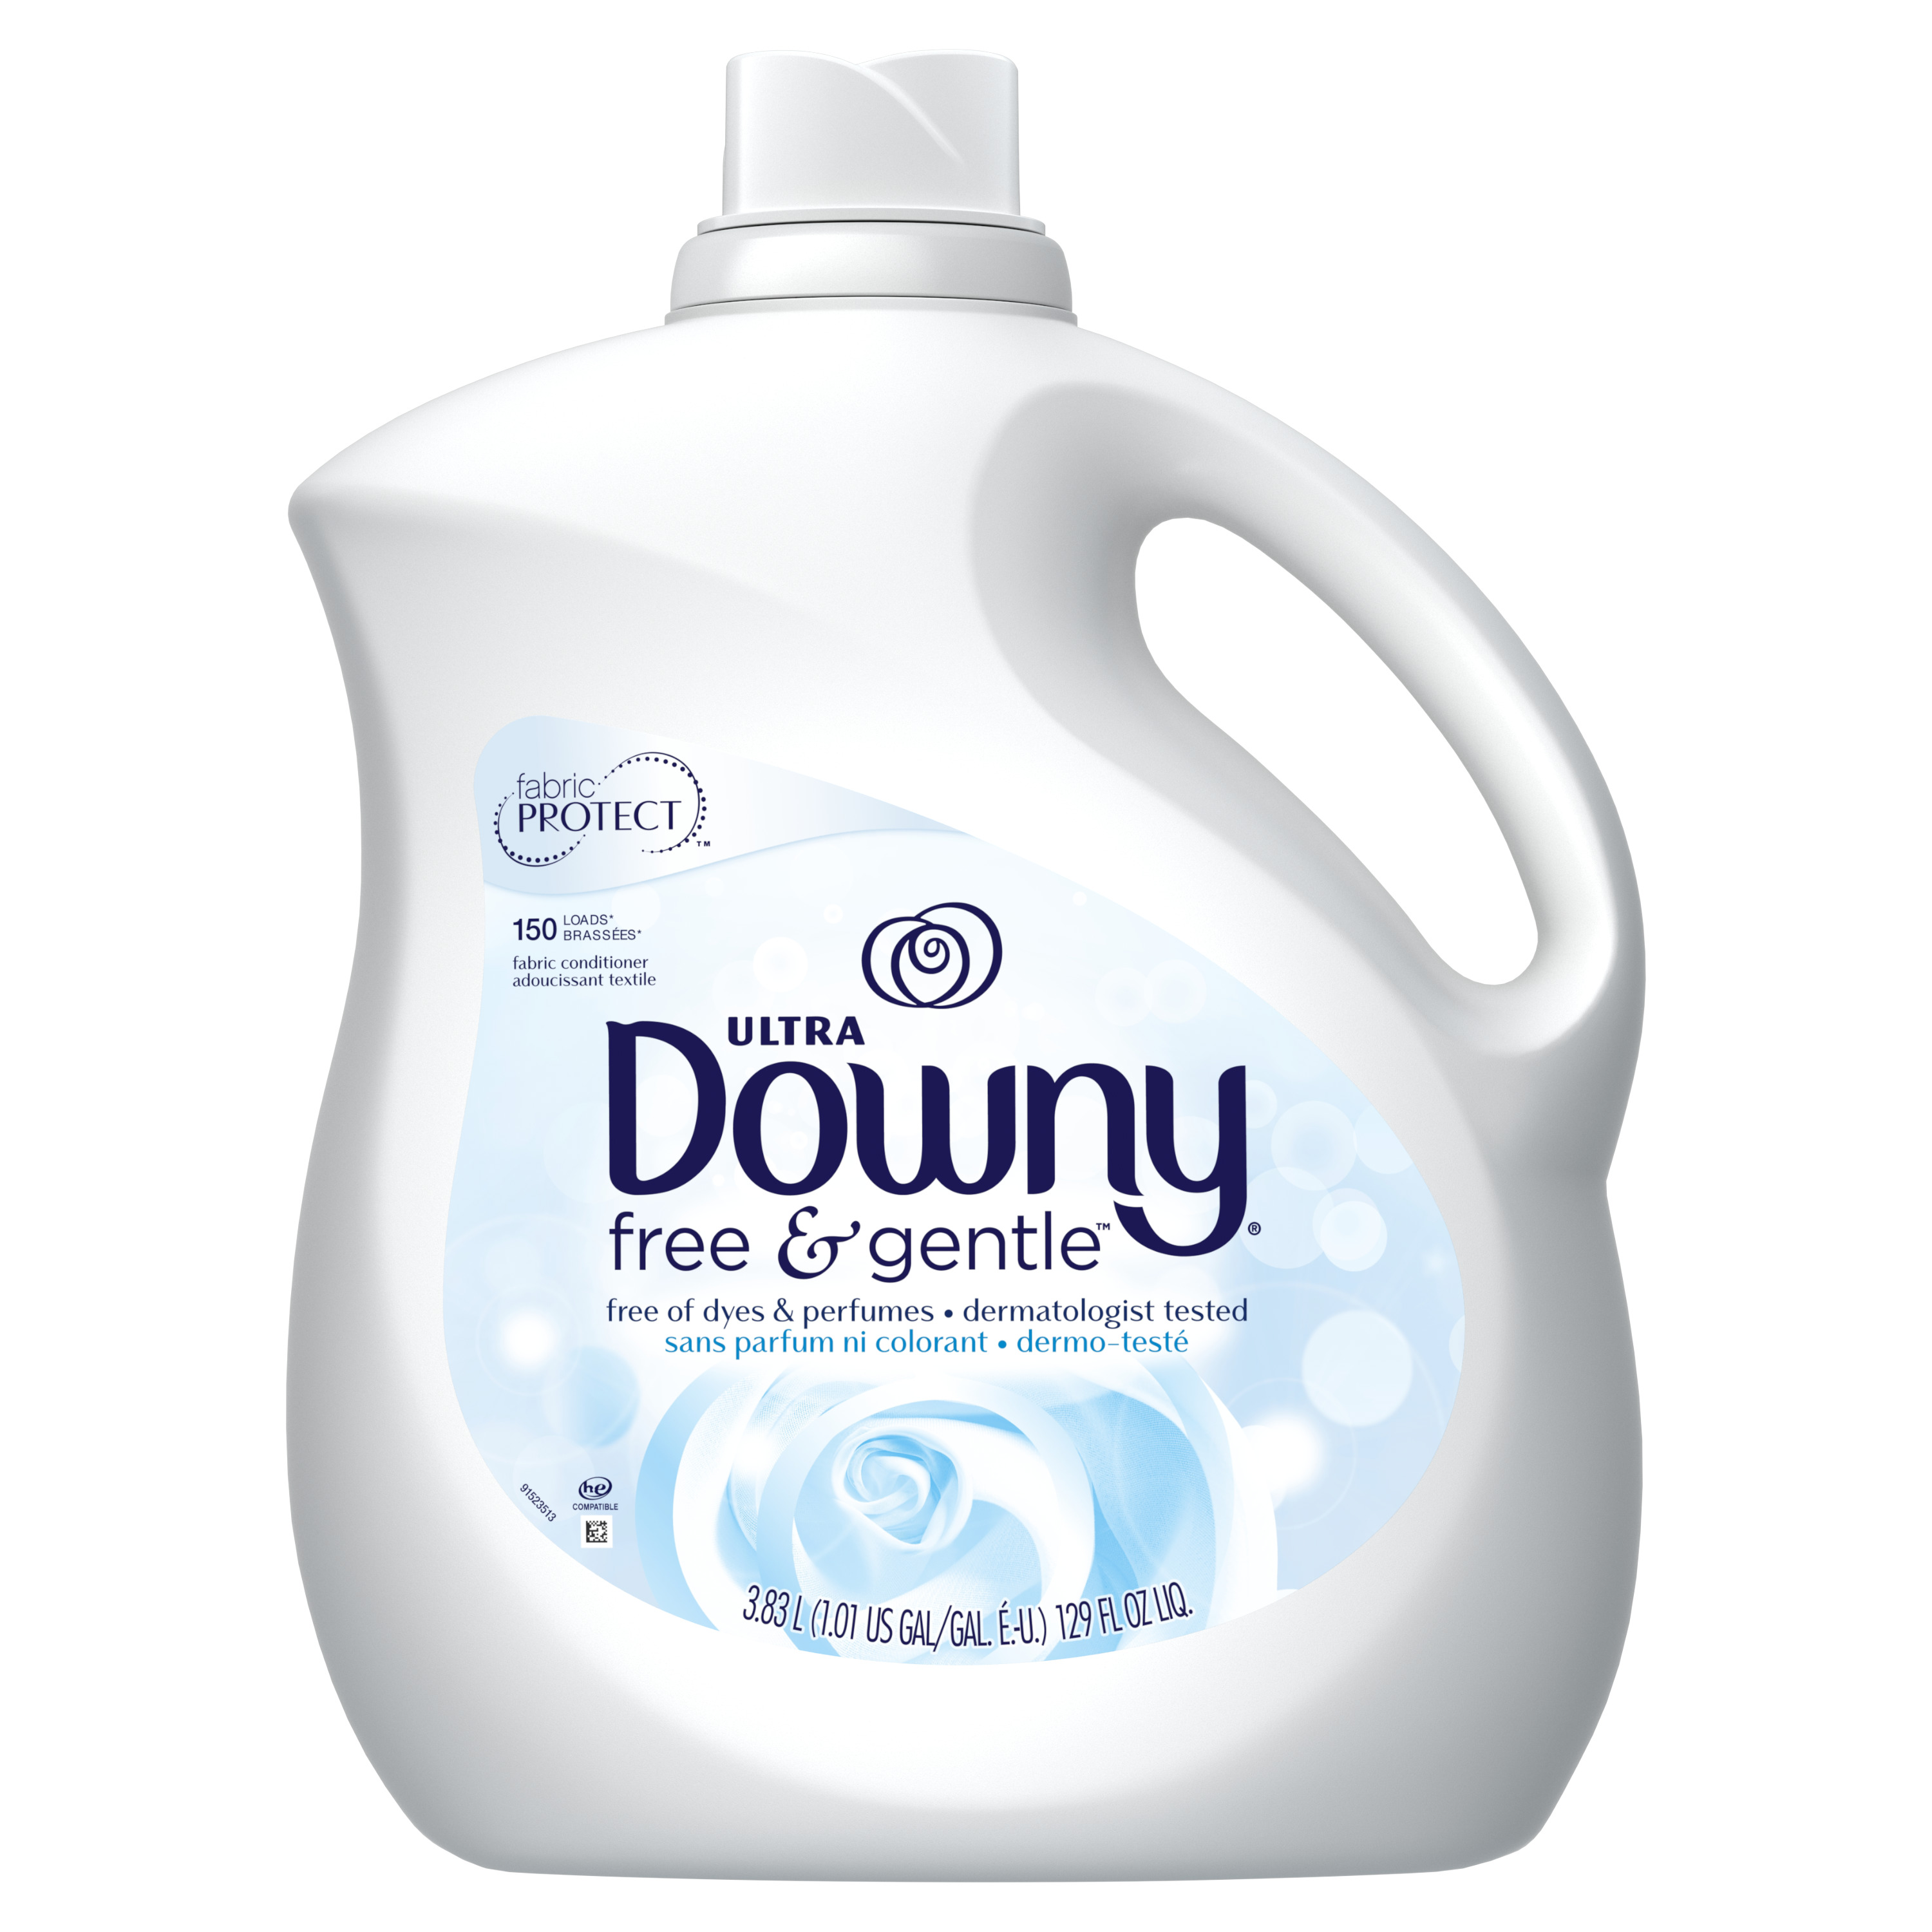 Downy Ultra Liquid Fabric Conditioner (Fabric Softener), Free & Gentle, 150 Loads 129 fl oz